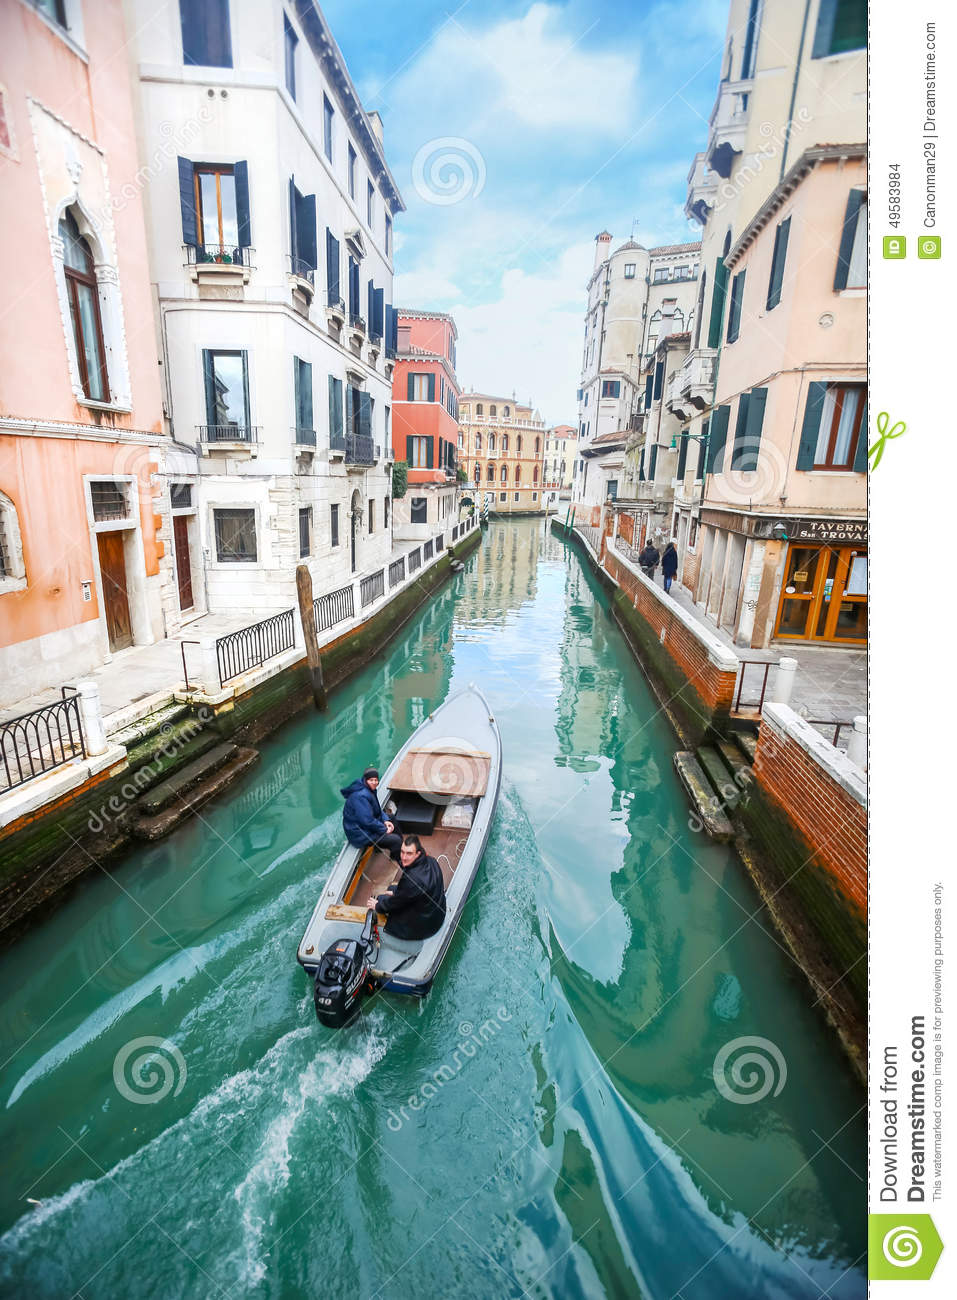 Boat Sailing In Italian Water Channel Editorial Stock ...